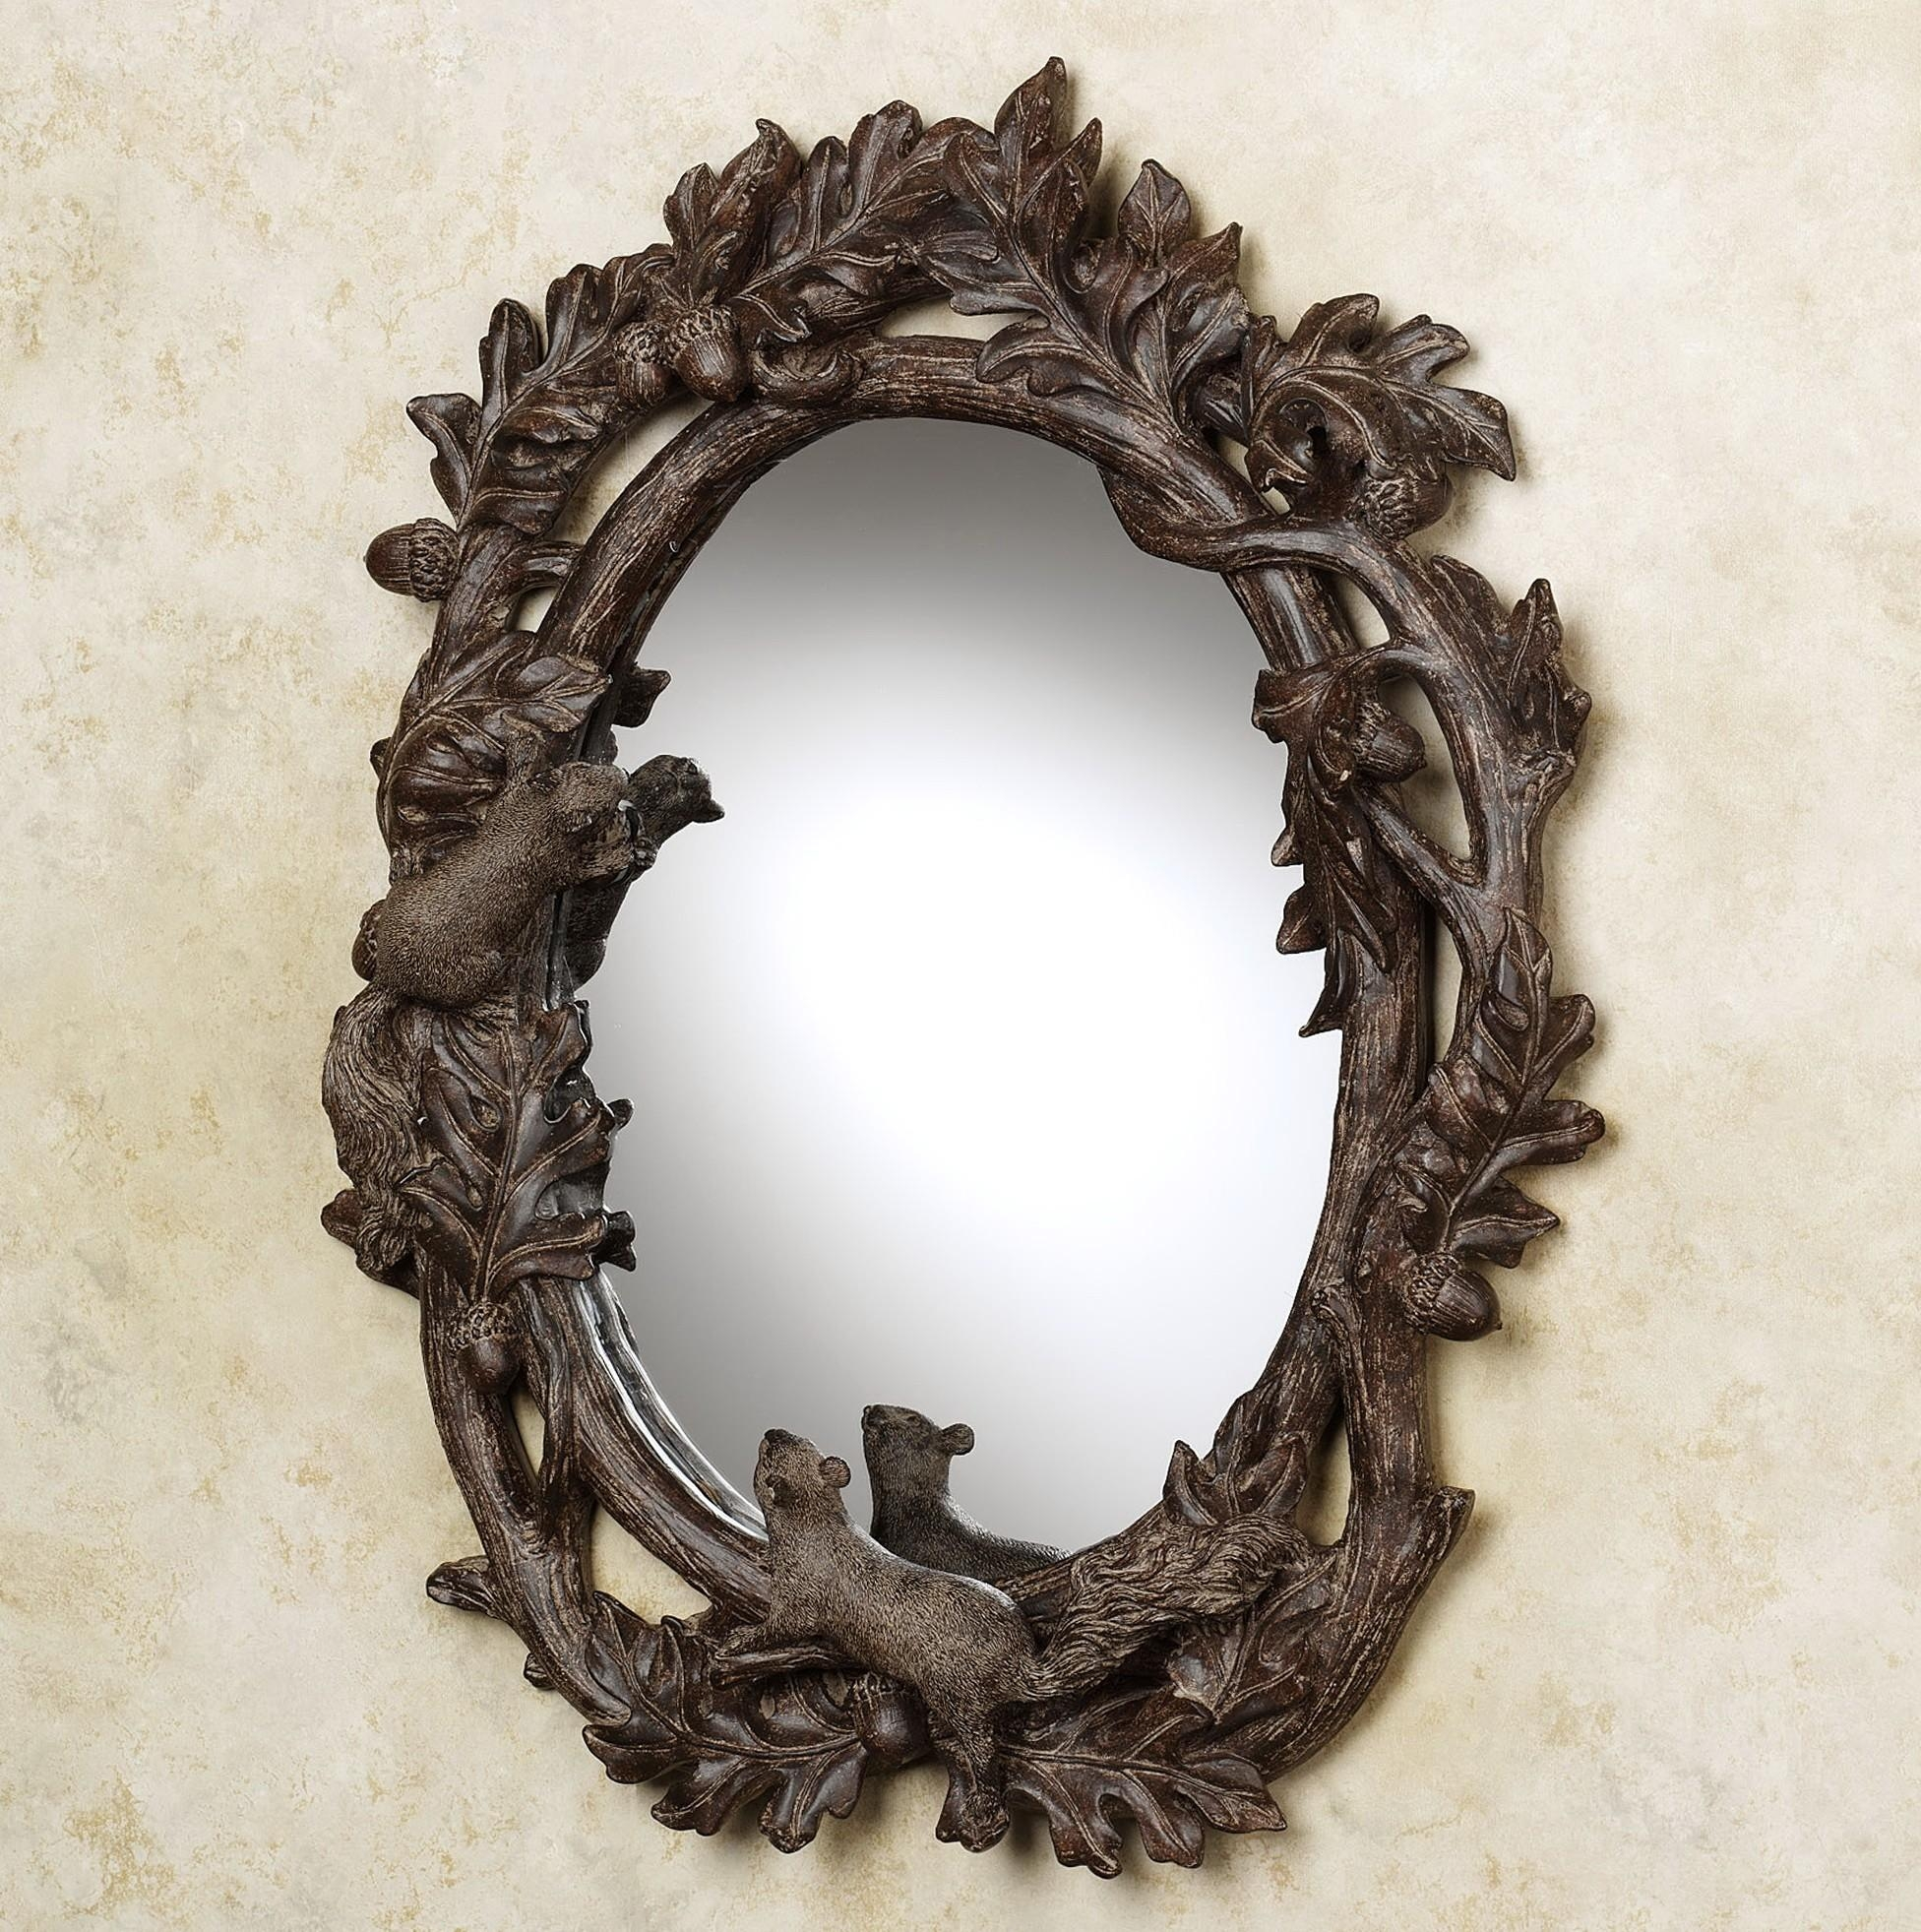 Home Decor: Antique Carved Dark Tone Wrought Iron Frame Wall Throughout Rod Iron Mirrors (Image 11 of 20)